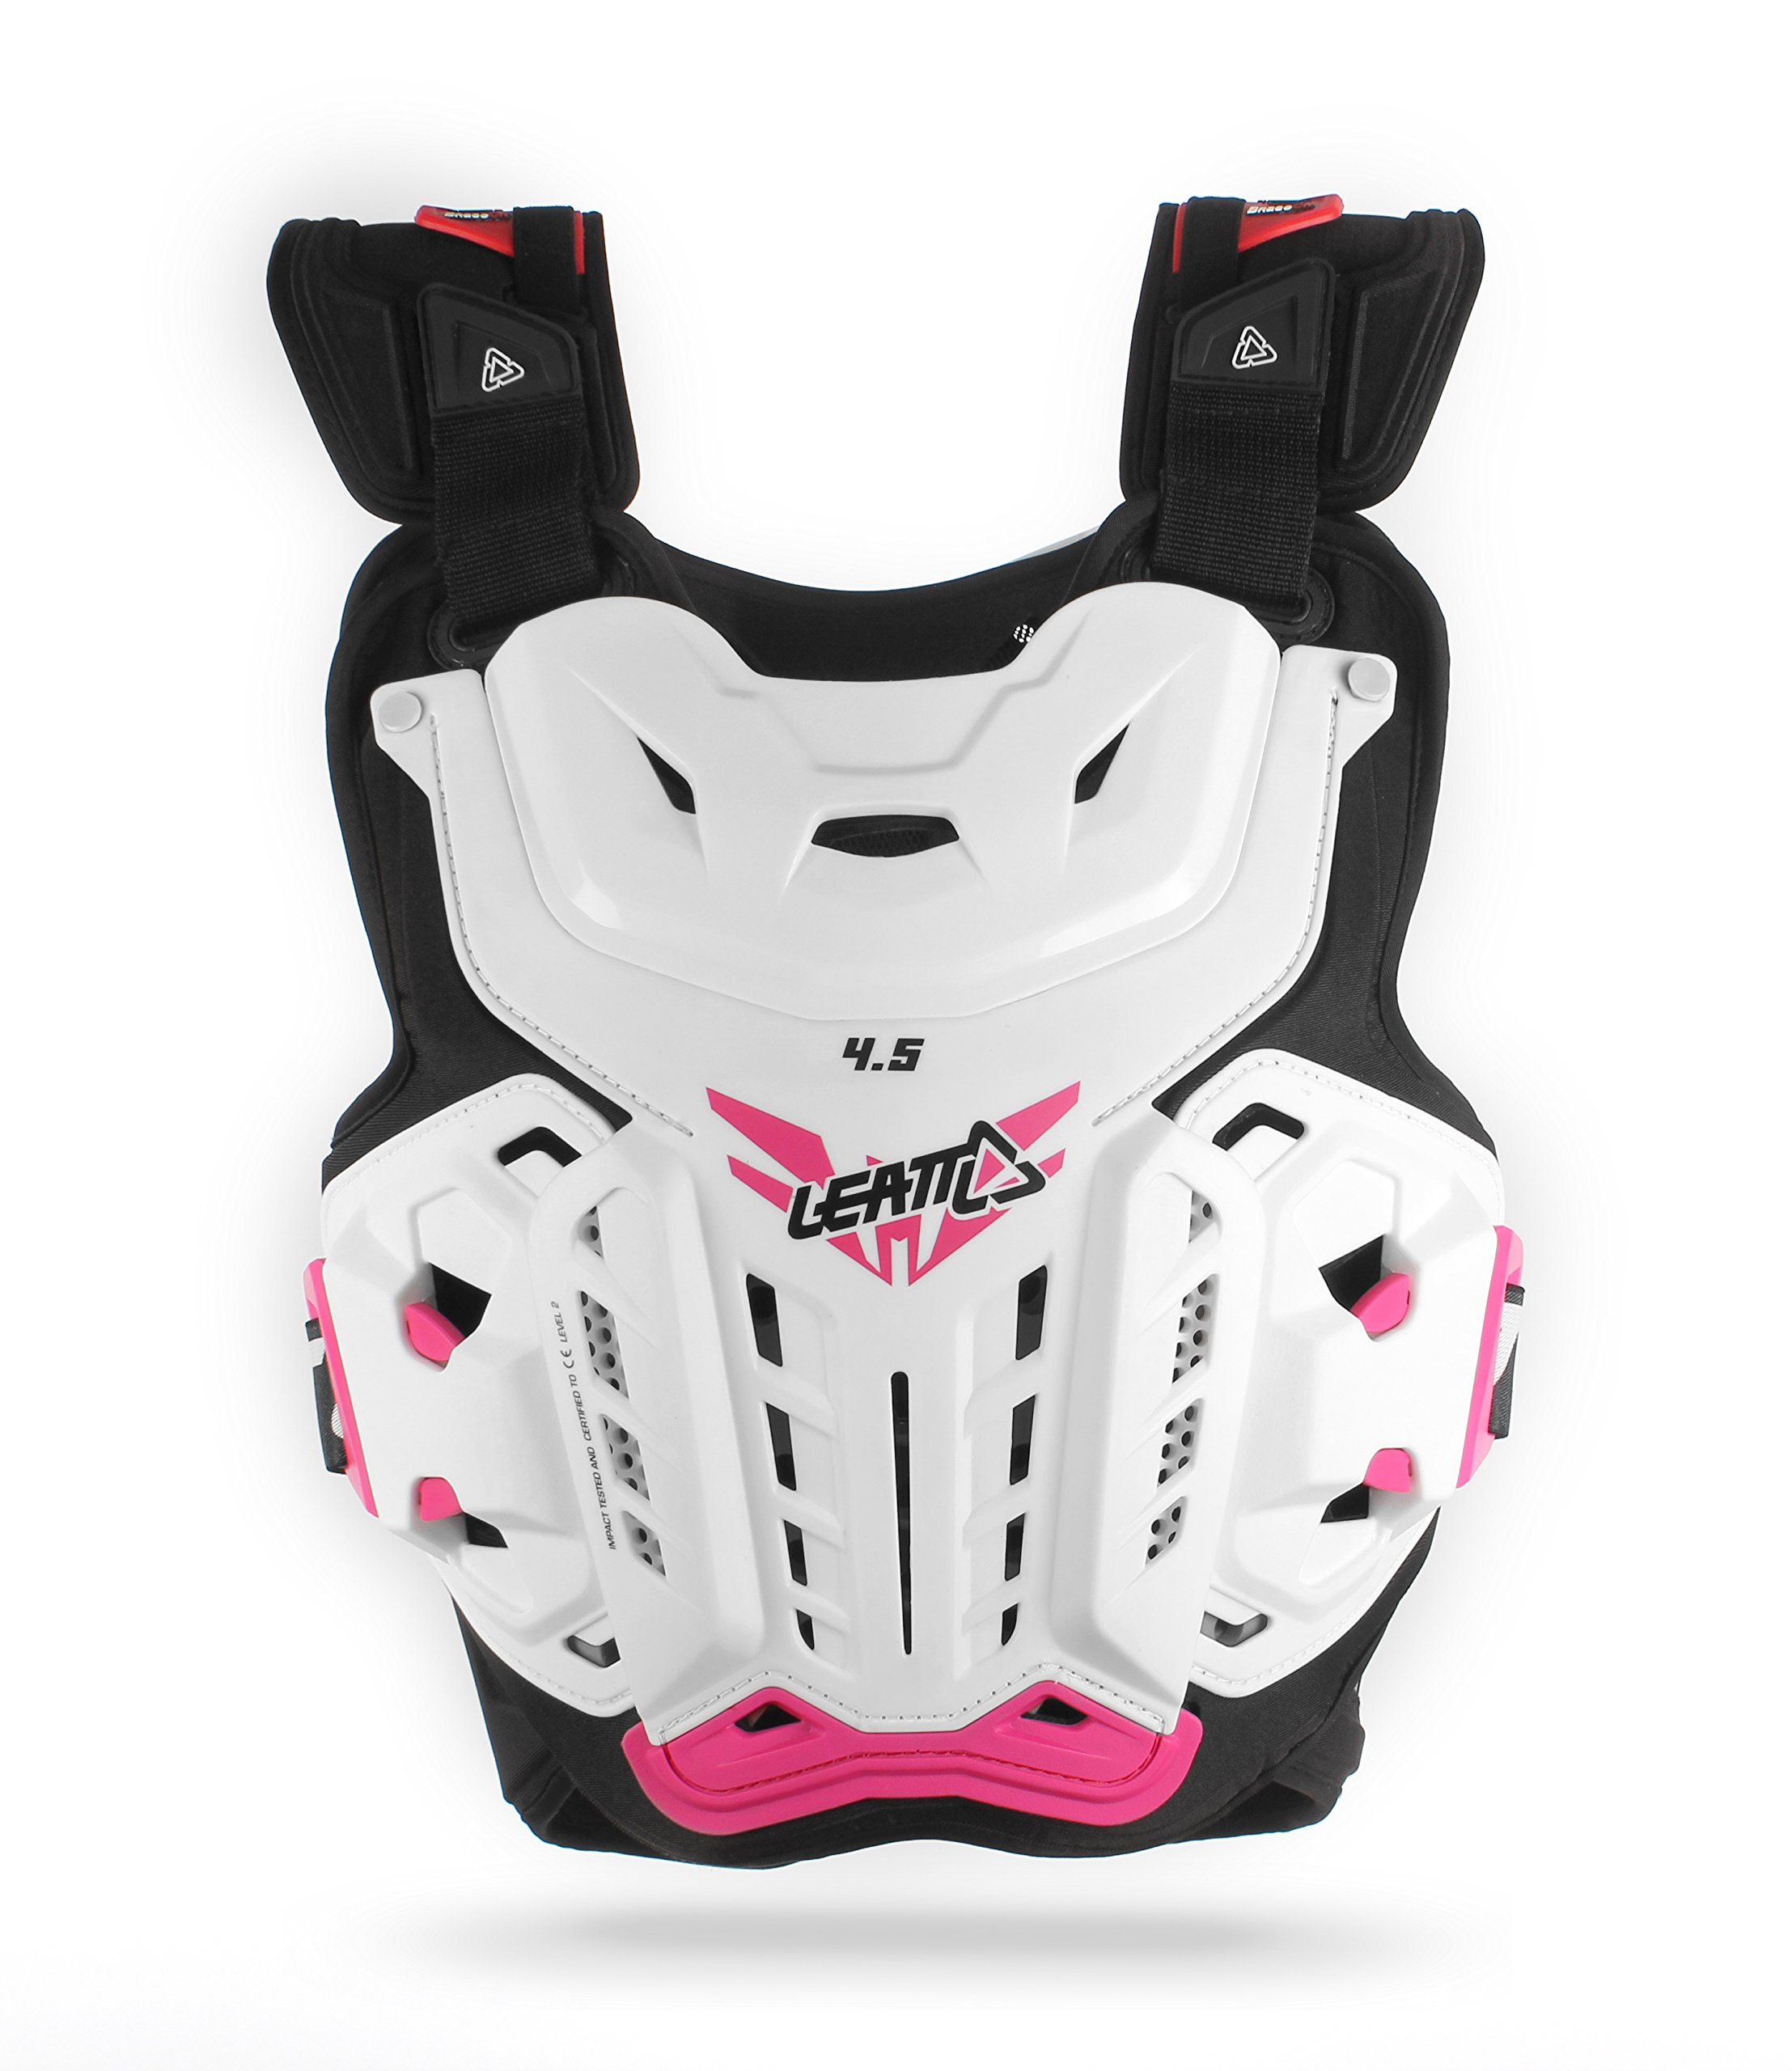 Leatt 5016300100 4.5 Jacki Chest Protector (White/Pink, One Size) by Leatt Brace